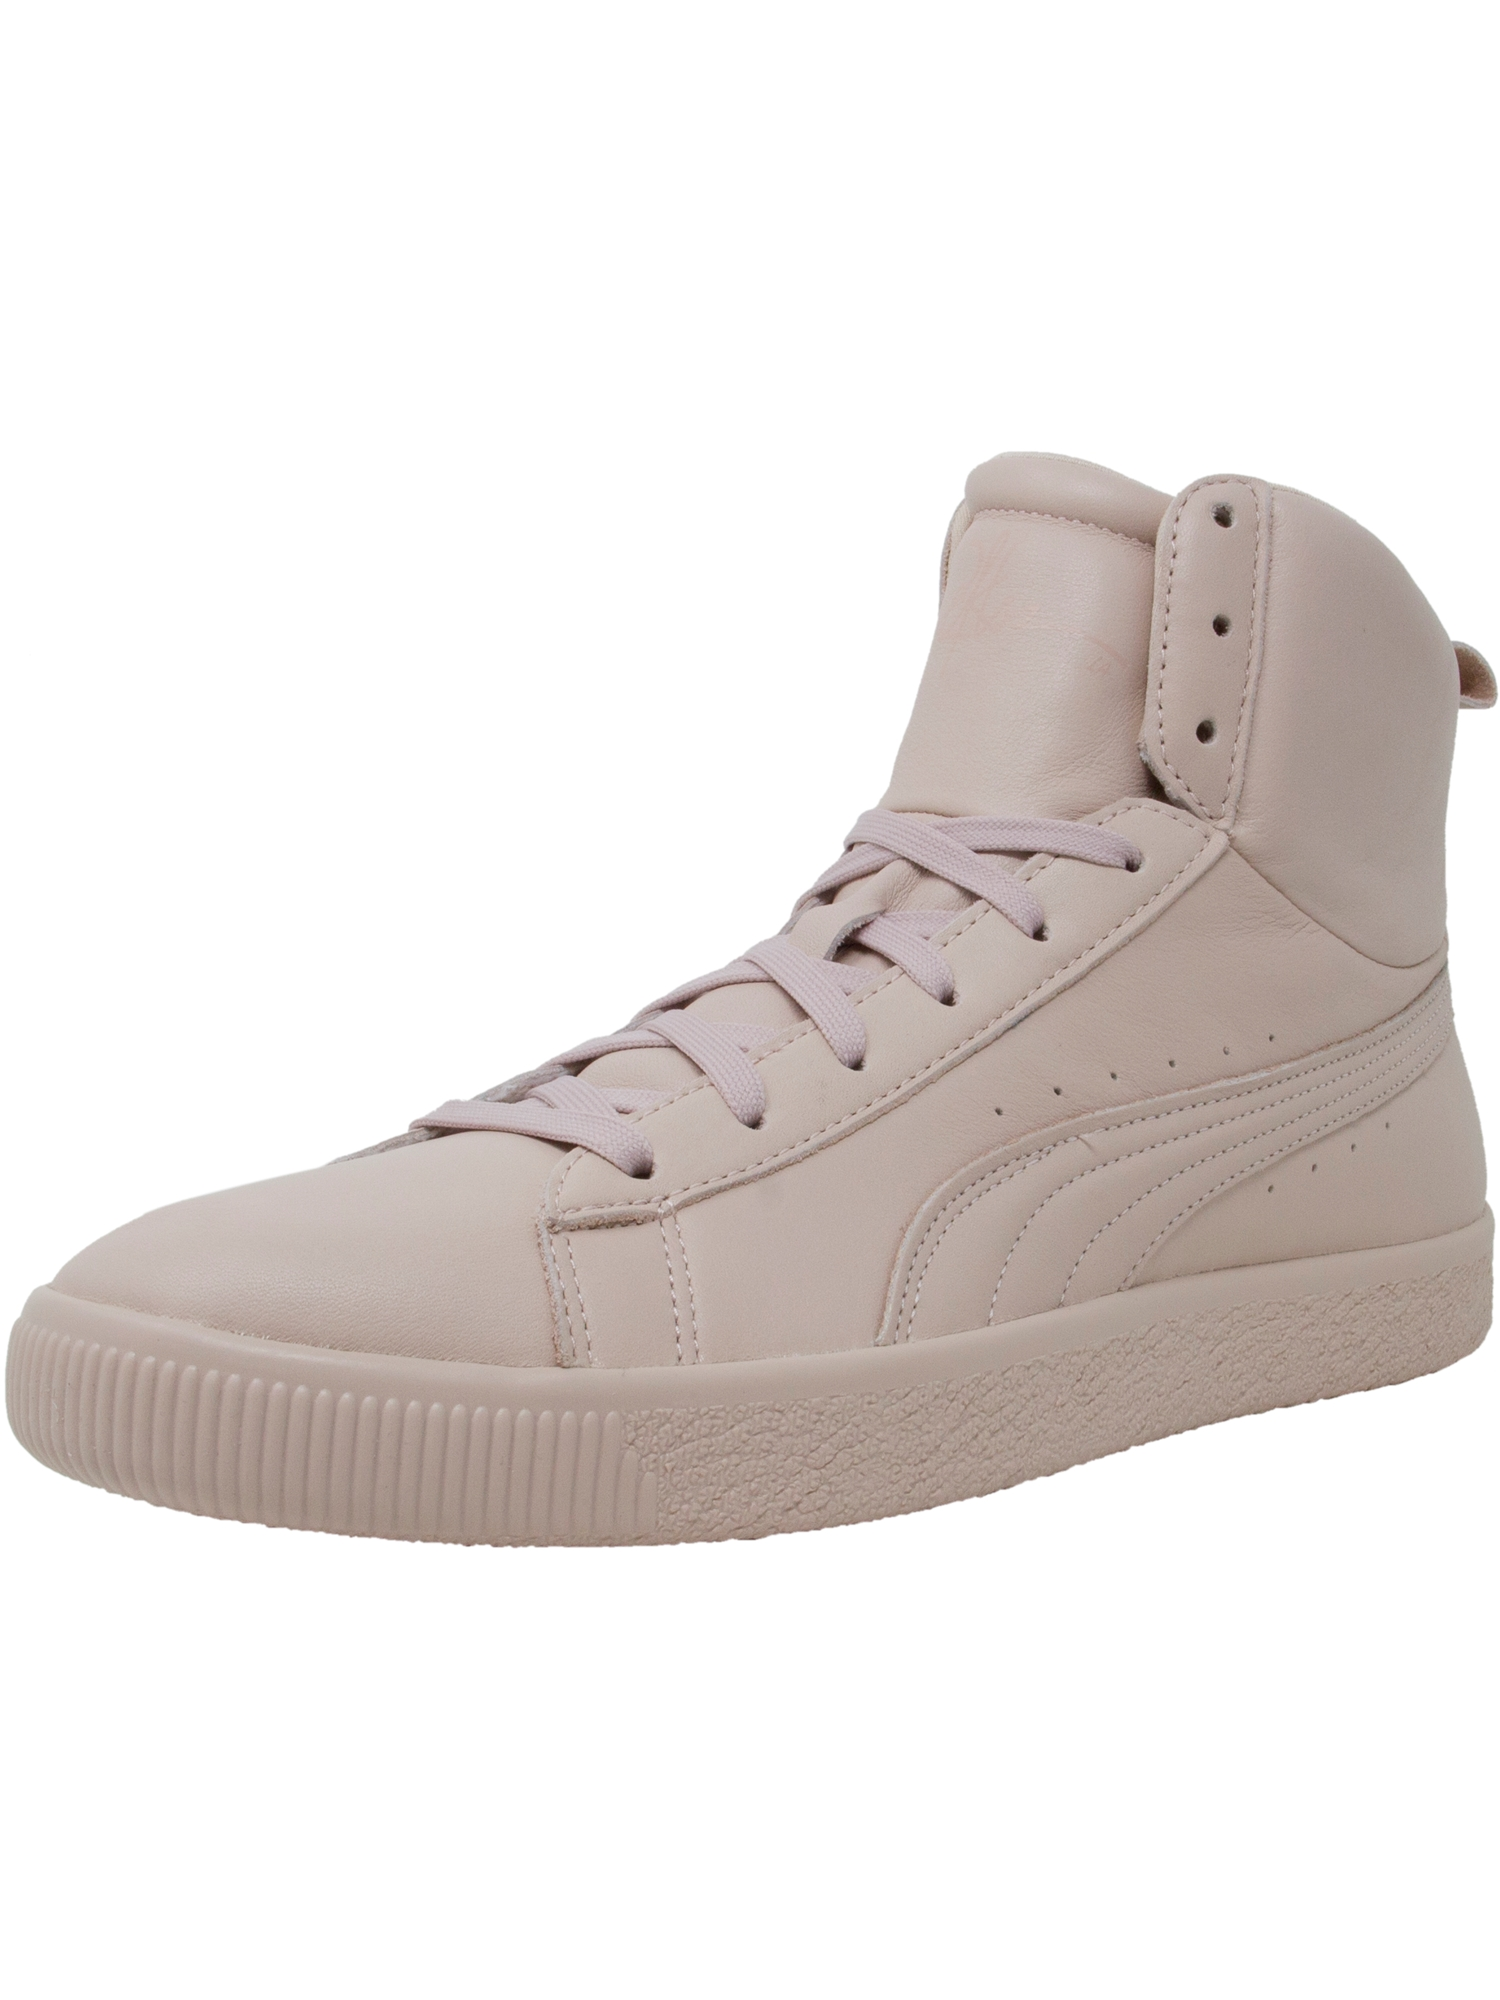 Puma Men's Clyde Mid Y And R Rose Smoke Ankle-High Leather Fashion Sneaker - 11M